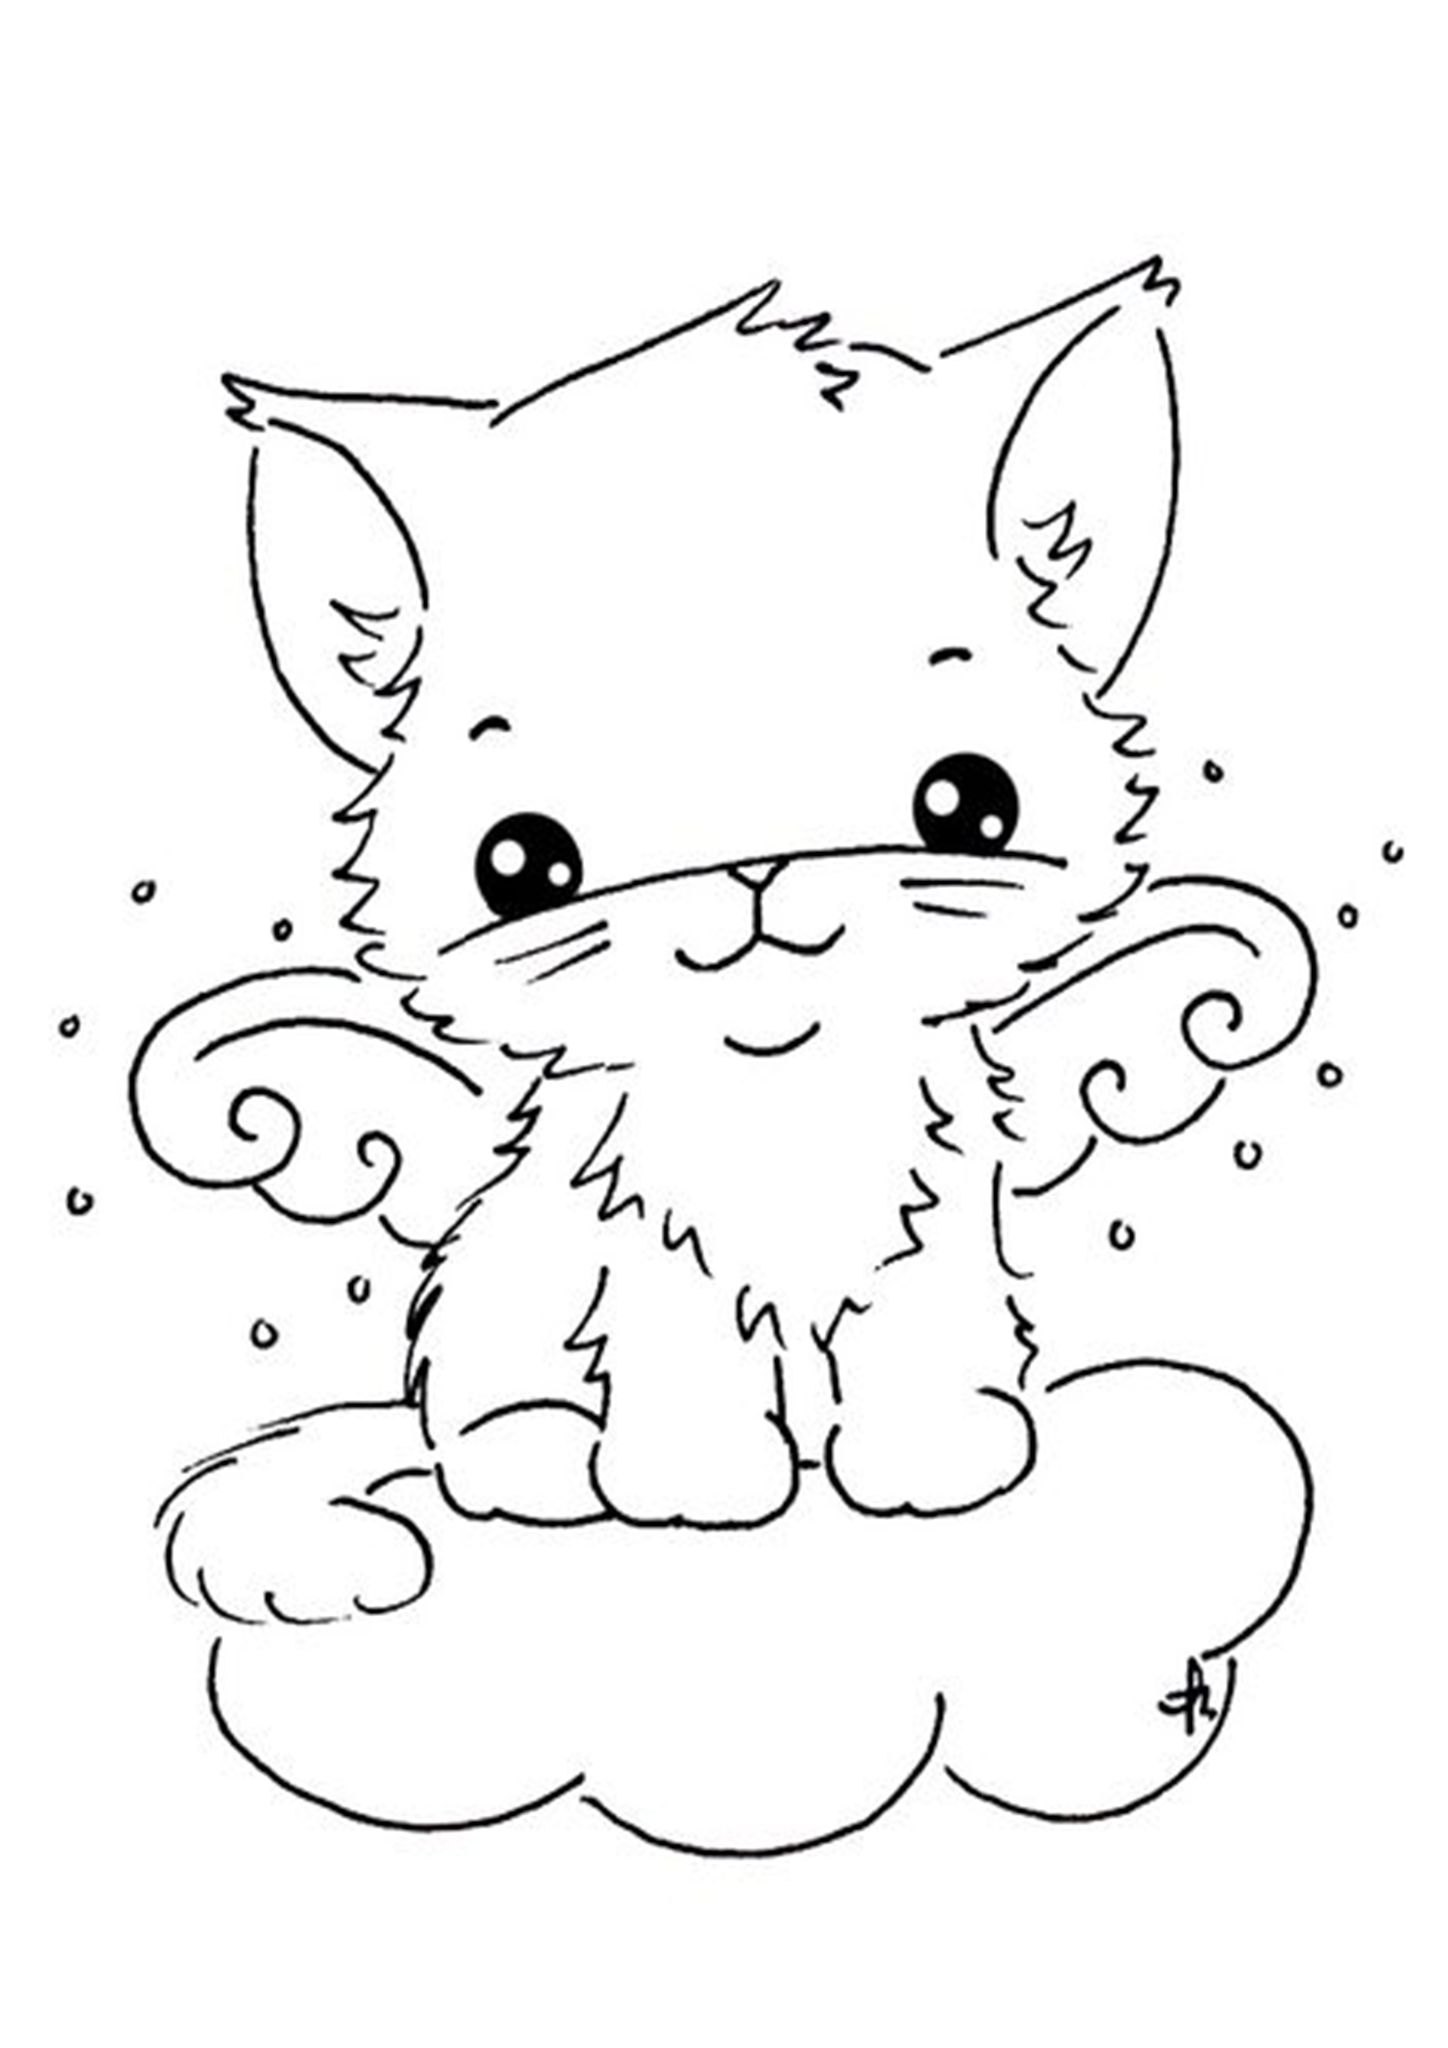 Free Easy To Print Kitten Coloring Pages Cat Coloring Page Coloring Pages Digi Stamps